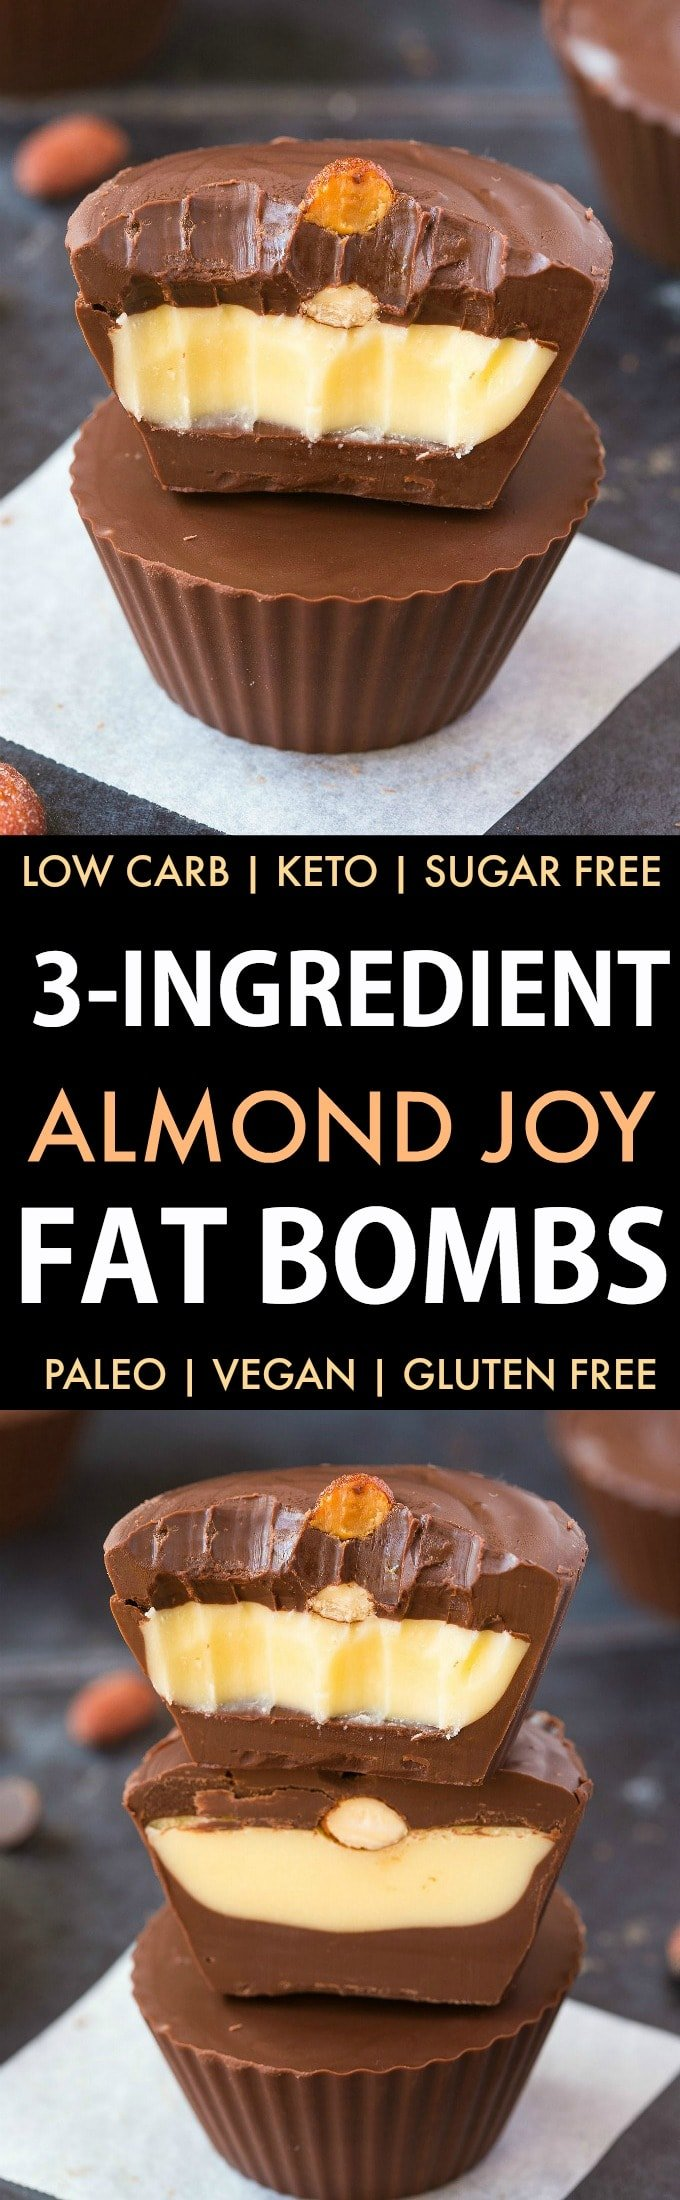 3-Ingredient Almond Joy Fat Bombs (Keto, Paleo, Low Carb, Vegan)- An easy low carb almond joy fat bomb recipe- 3 ingredients, 5 minutes and the perfect combo of coconut, almonds and chocolate but healthy! The perfect snack or dessert! | #fatbombs #ketogenicfood #ketosis #ketovegan | Recipe on thebigmansworld.com